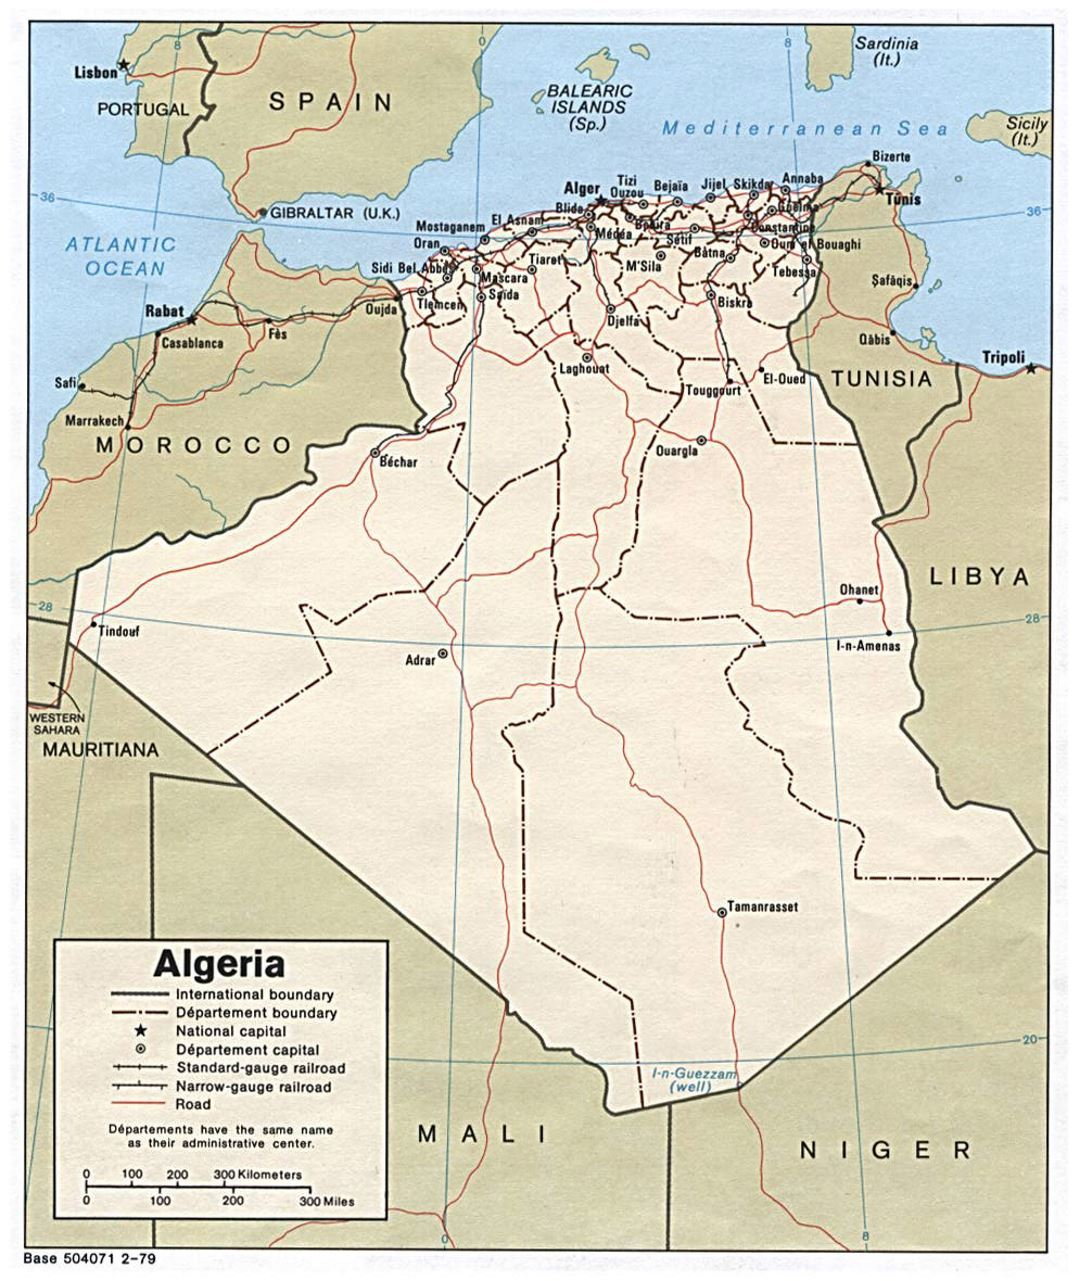 Detailed political and administrative map of Algeria with roads, railroads and major cities - 1979